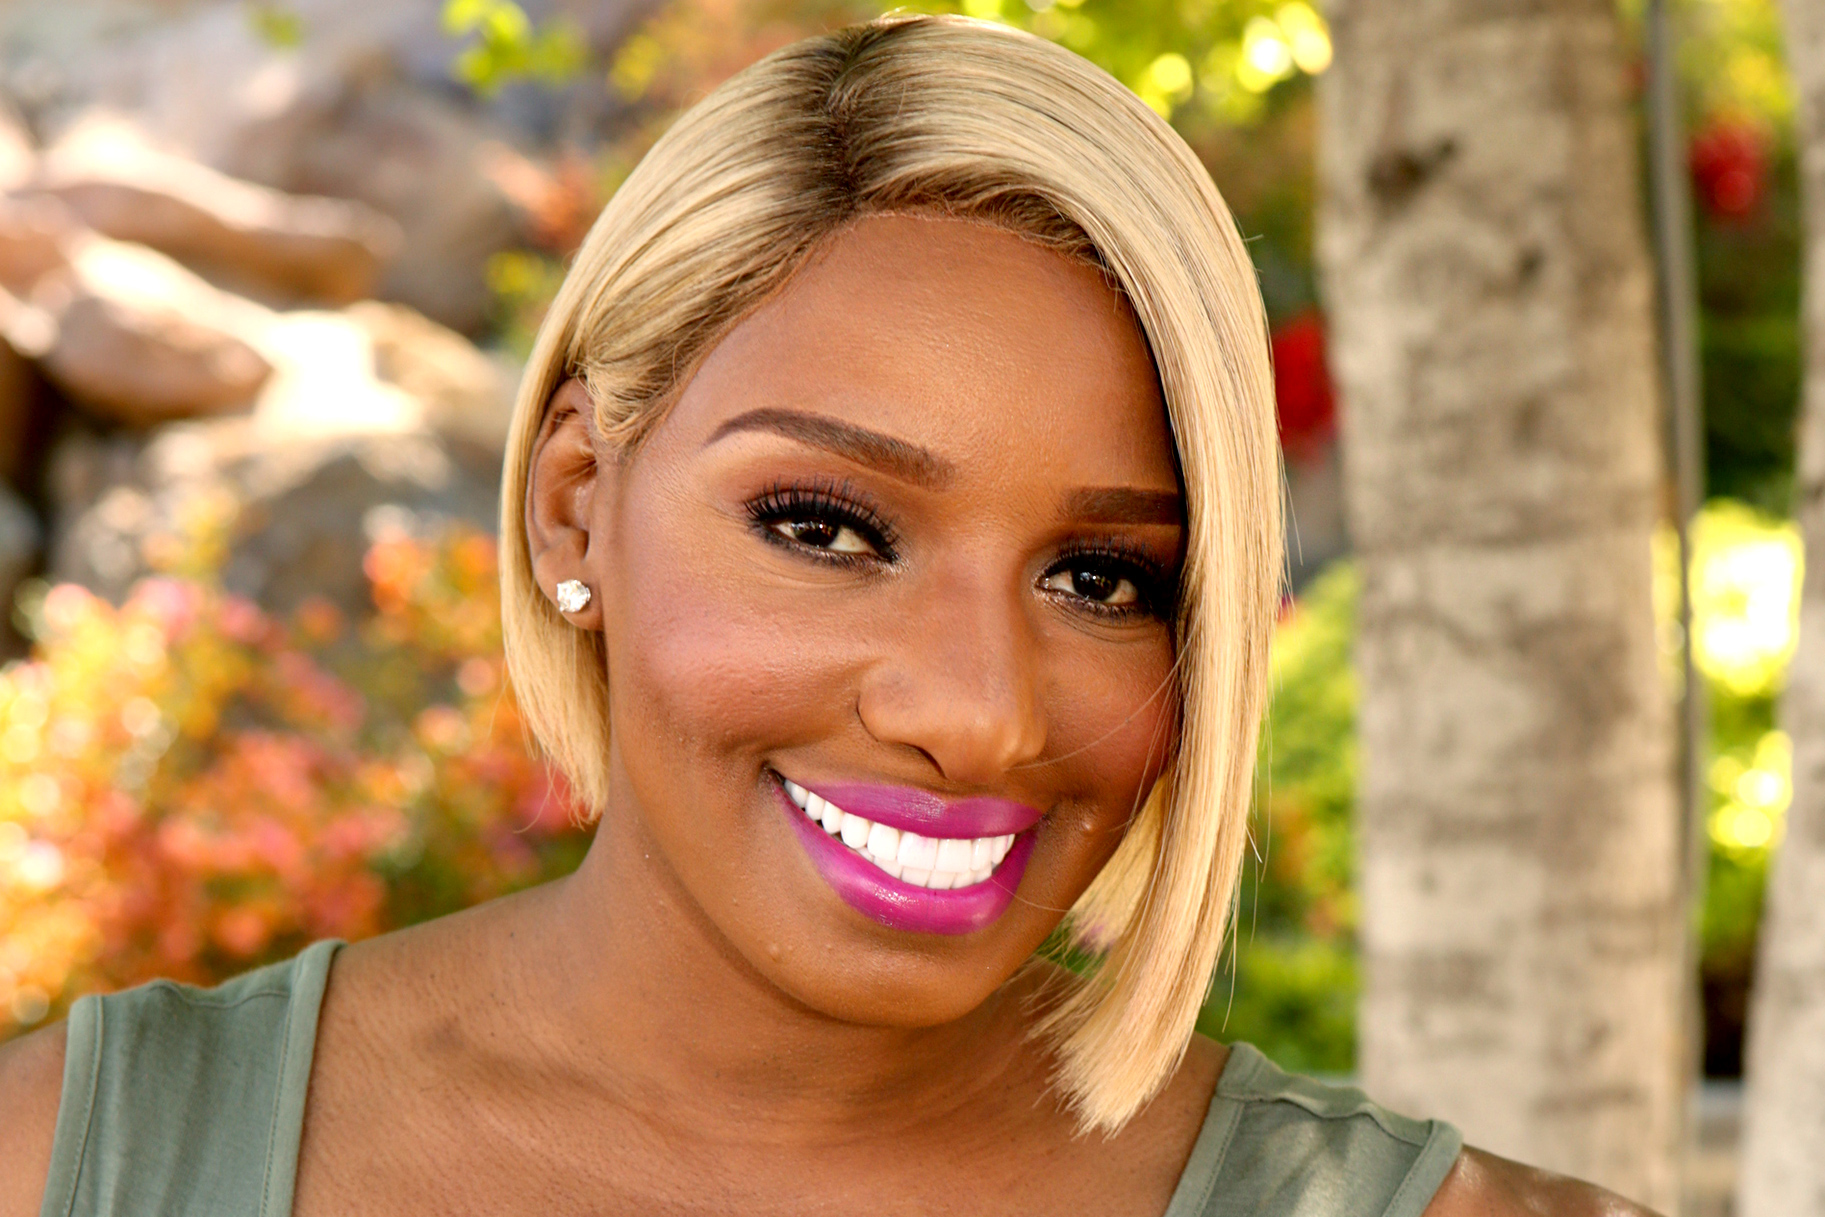 NeNe Leakes Is Guest Co-Host On The Real Today - Fans Ask Her To Spice Up The Show